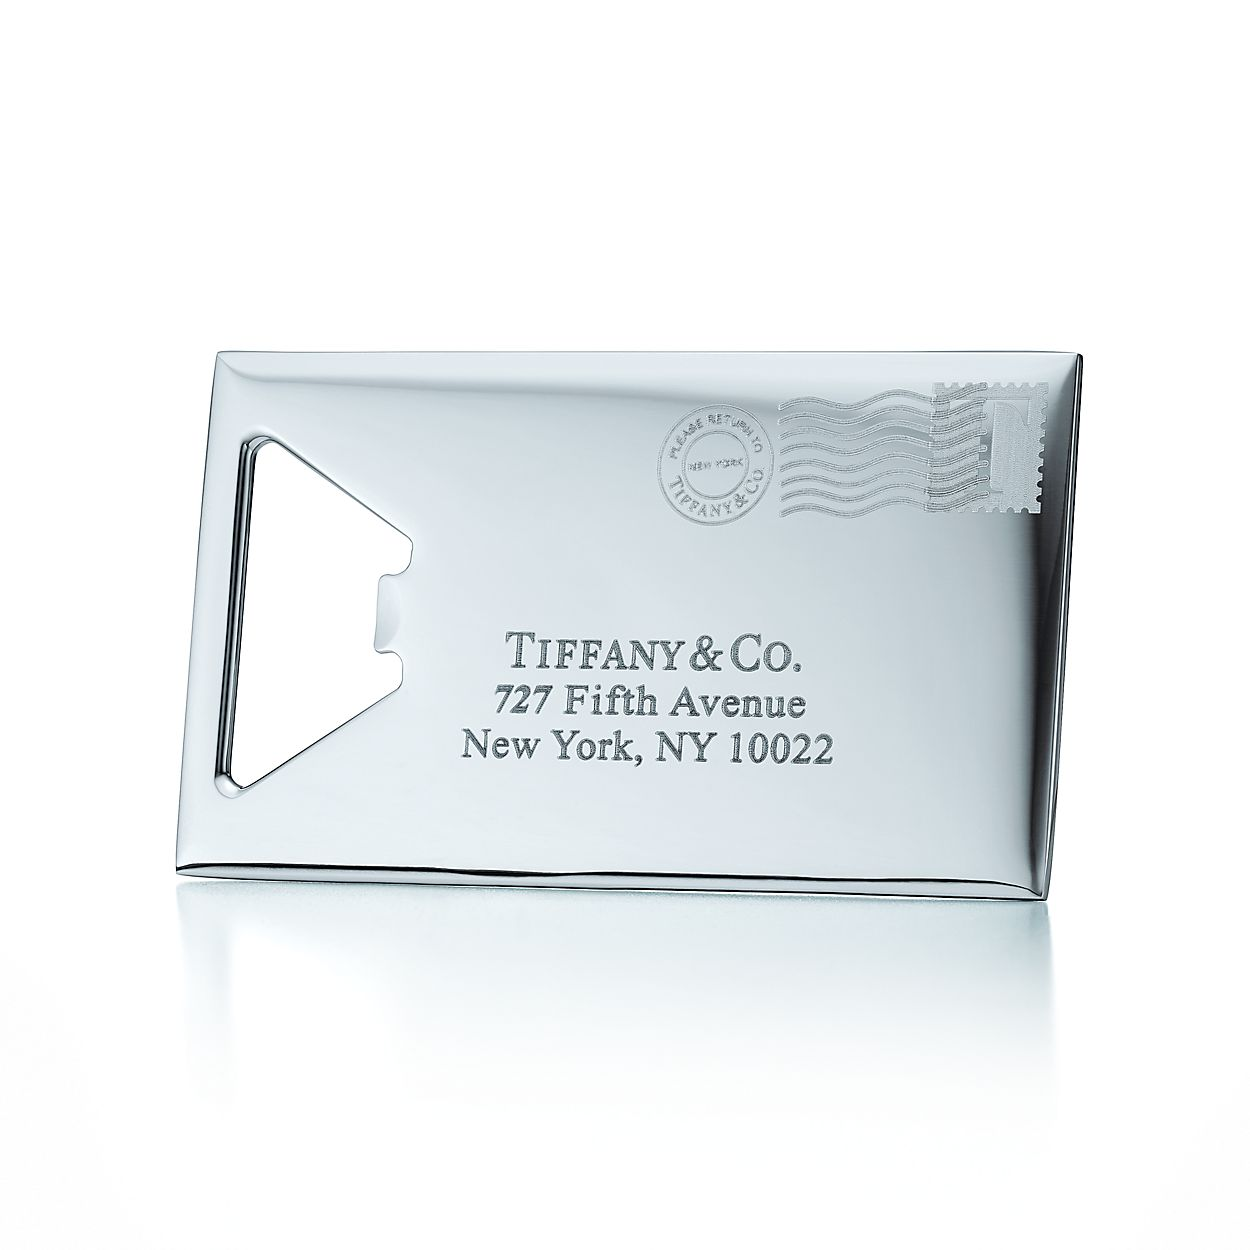 T&CO. envelope bottle opener in stainless steel. | Tiffany & Co.